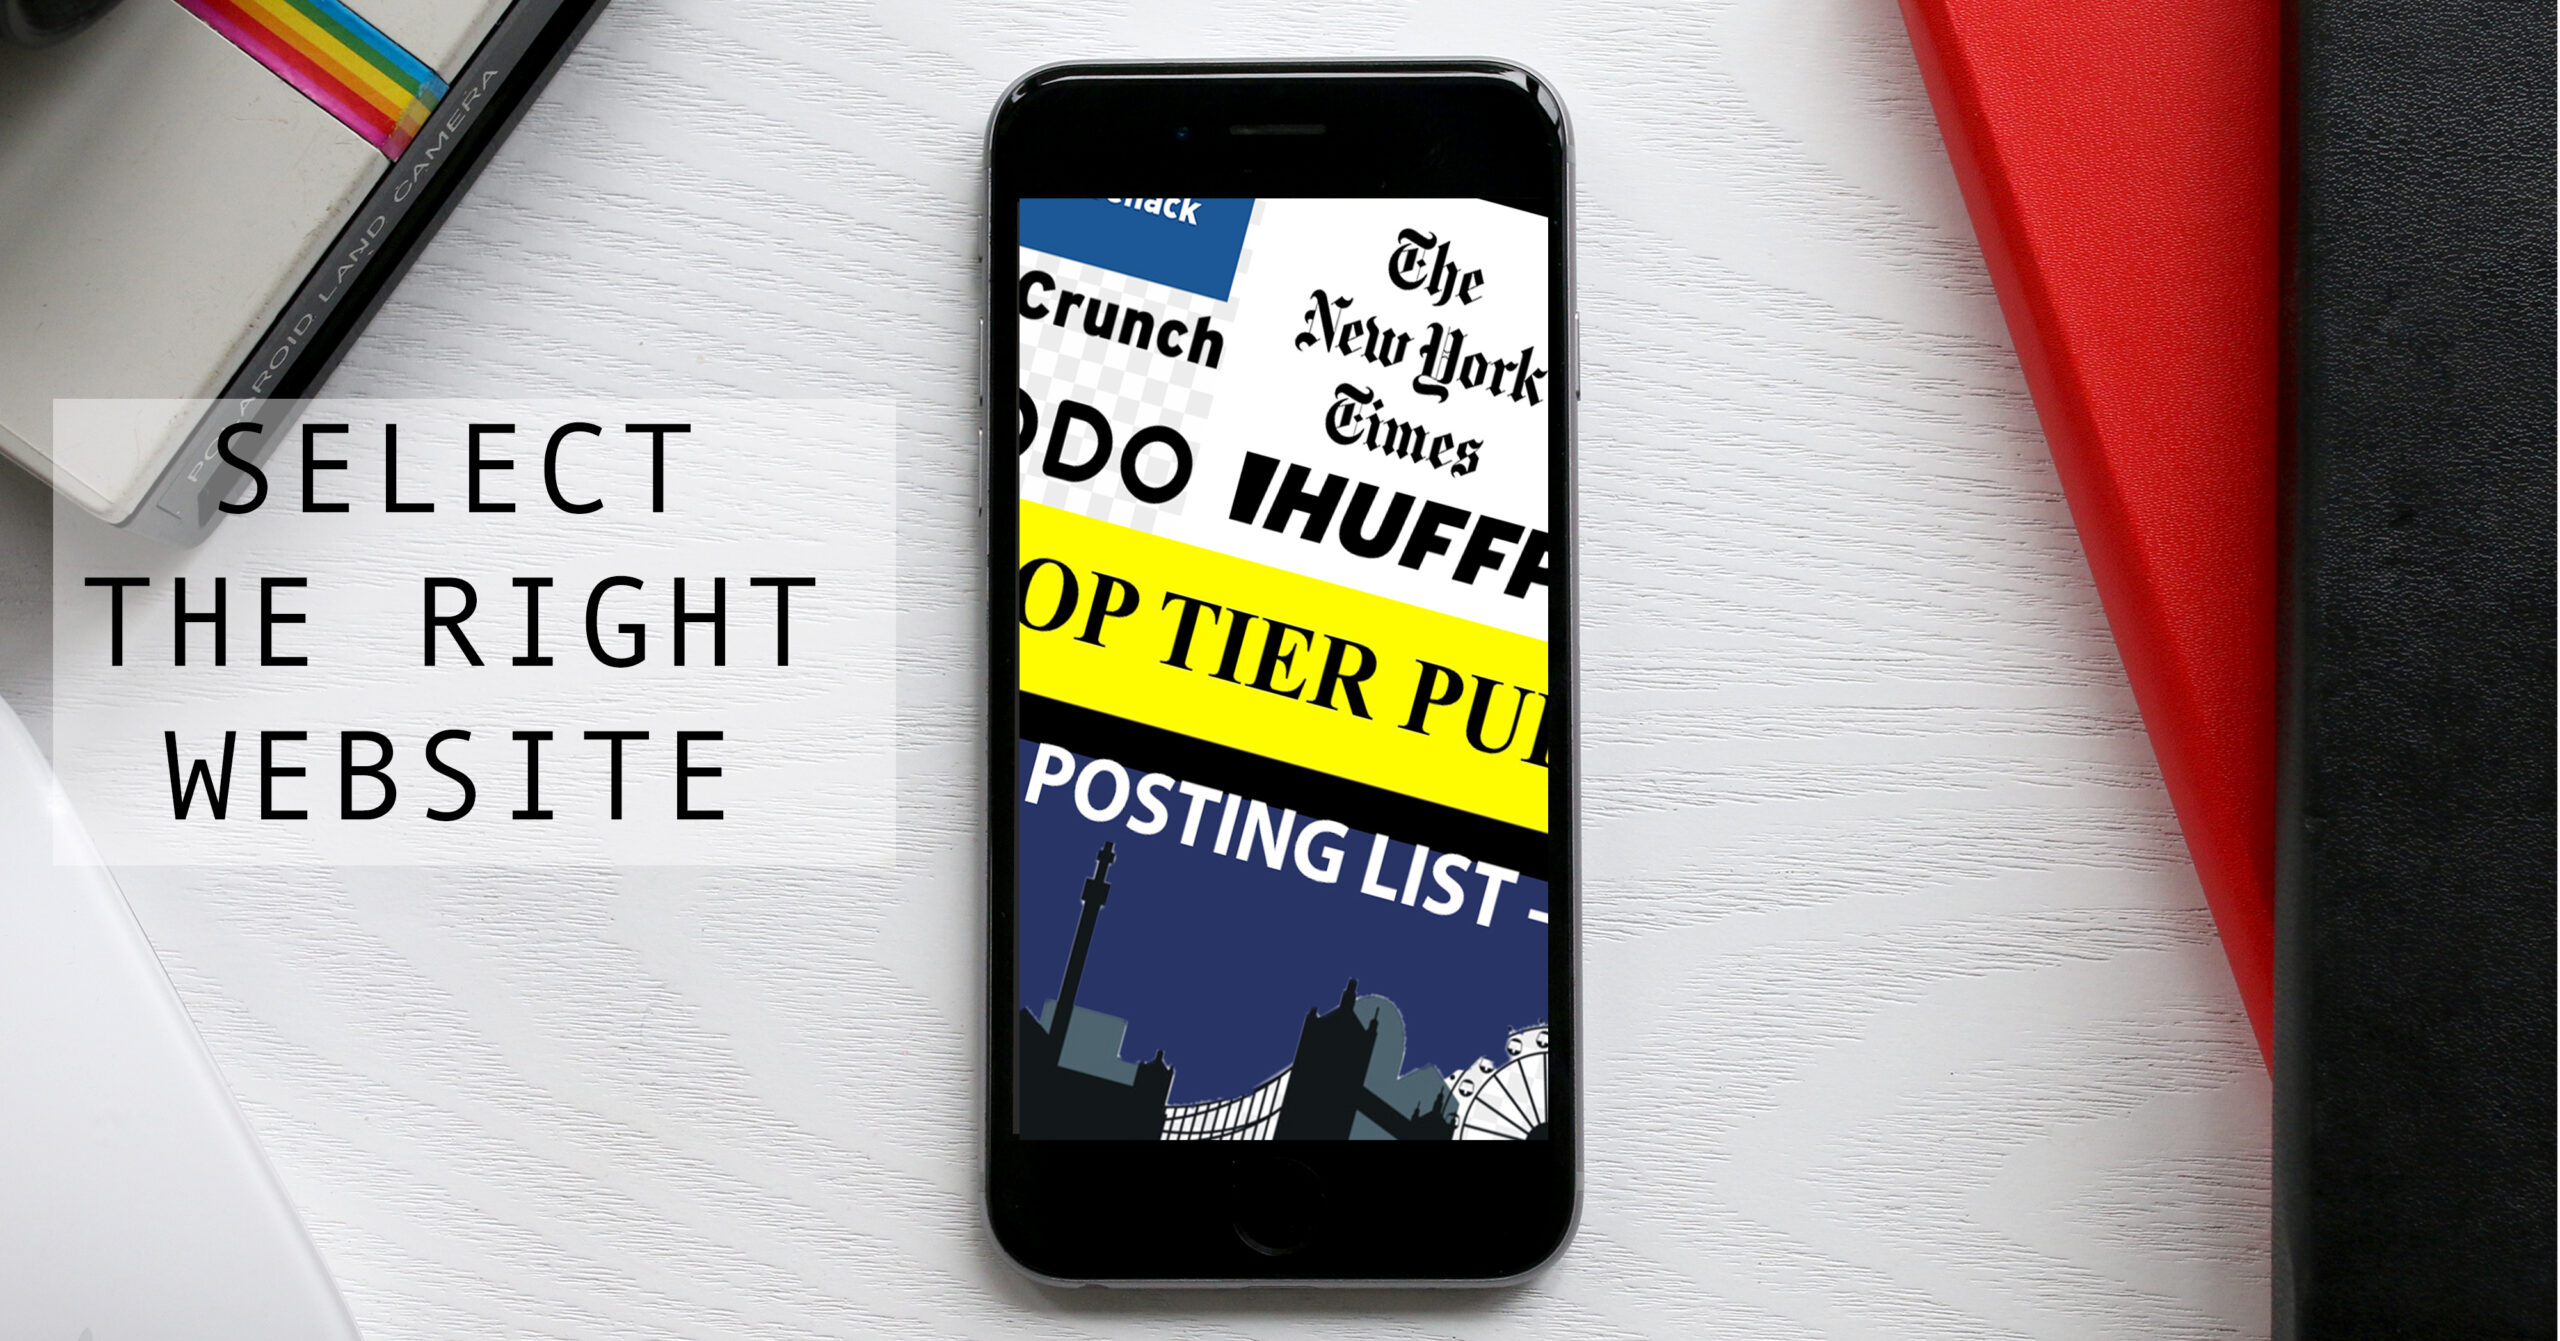 Select the right website for your guest post